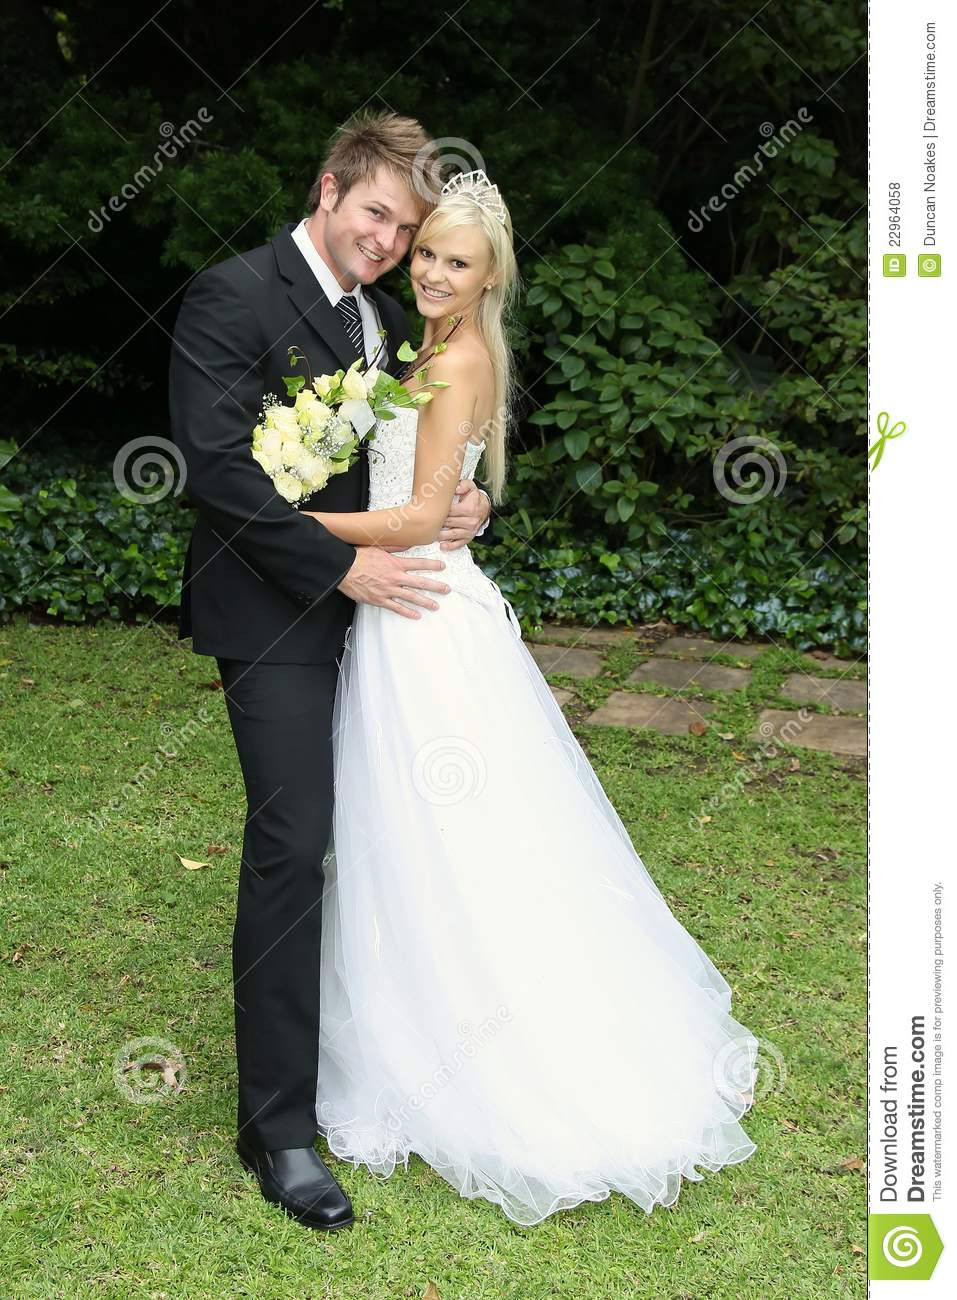 a beautiful wedding day Enjoy sharing these beautiful wedding poems with the bride and groom on their wedding day i hope their wedding and marriage turns out to be fabulous.